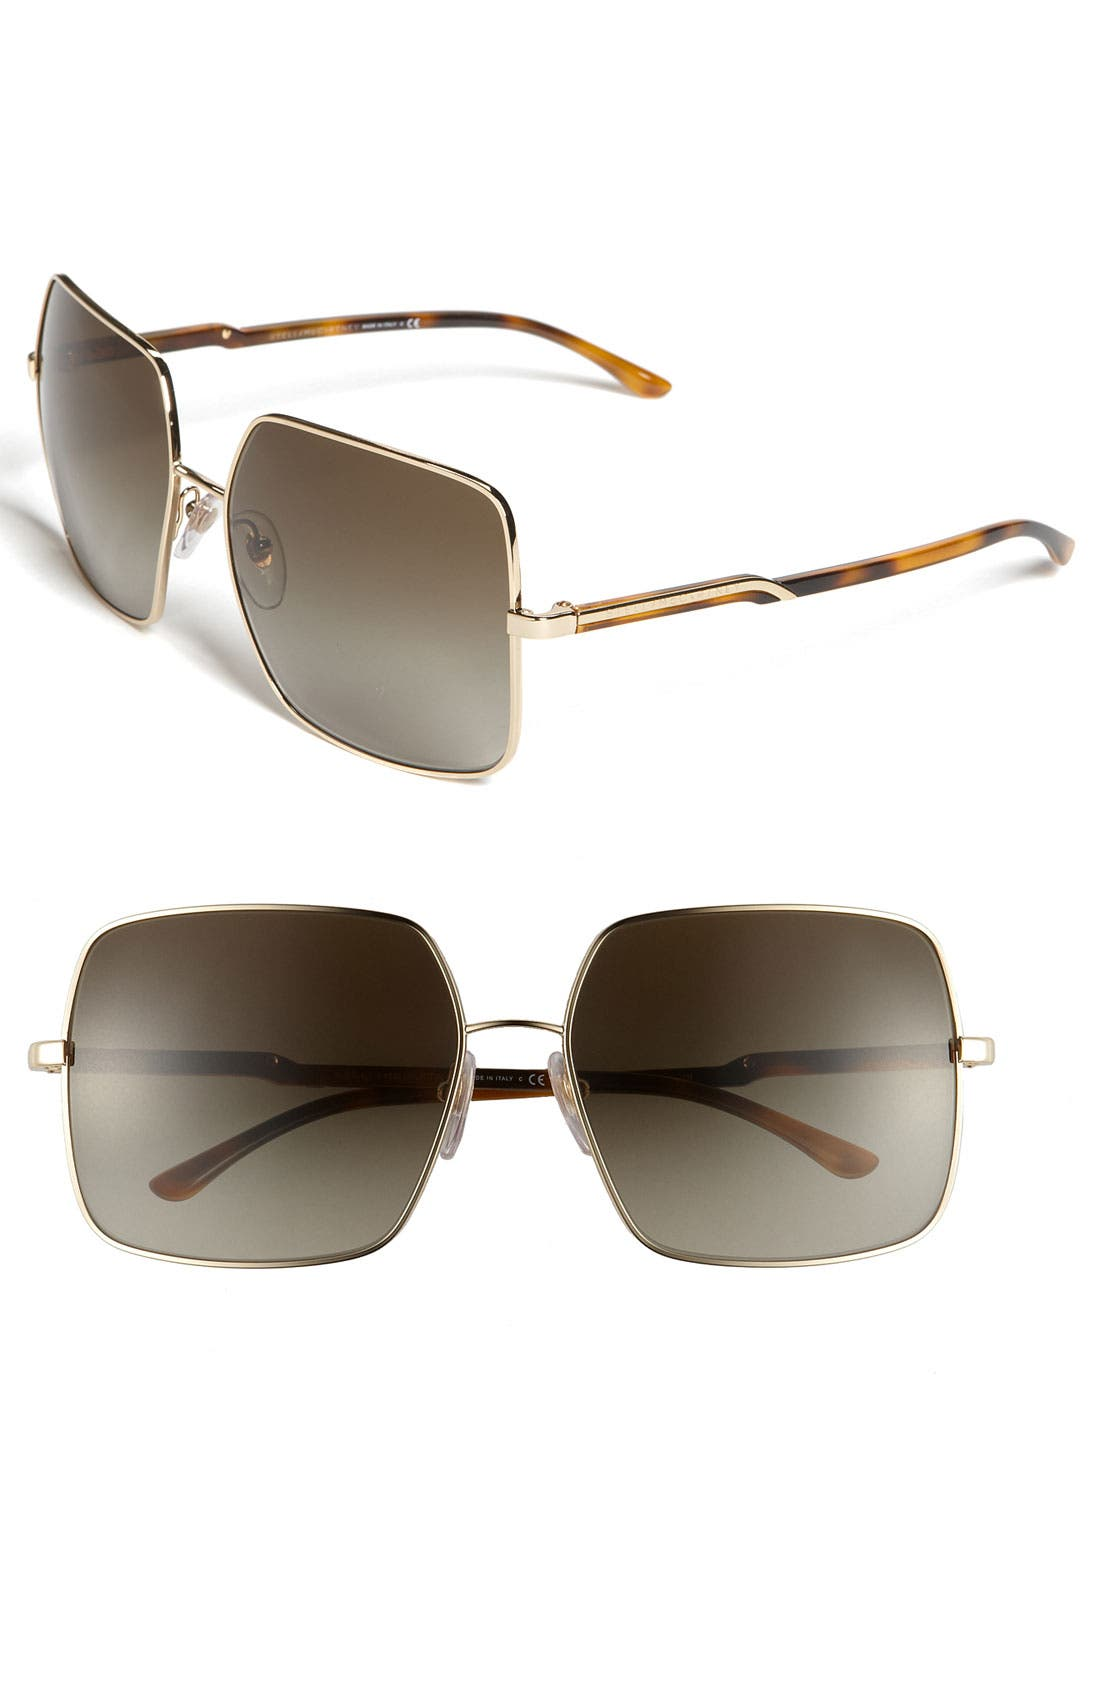 Main Image - Stella McCartney Metal Square Sunglasses